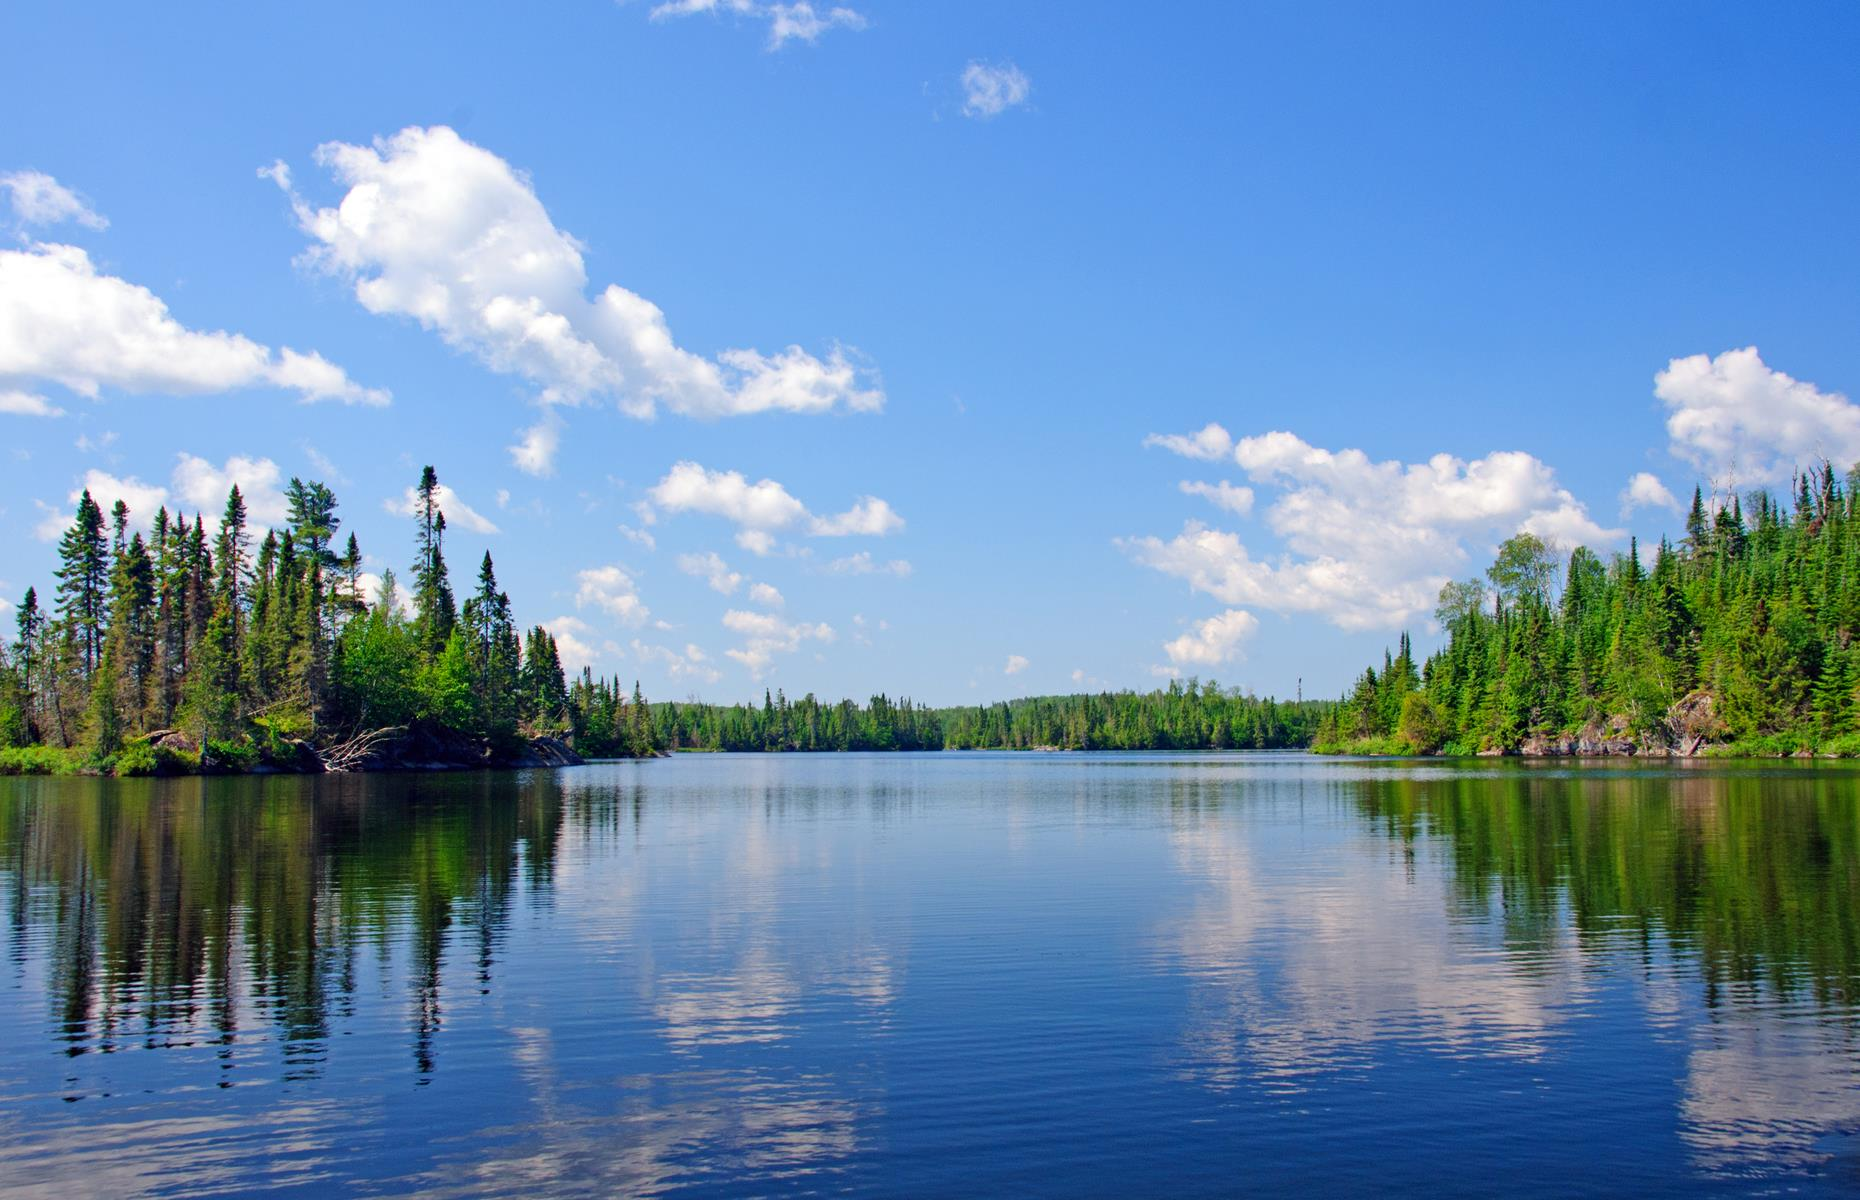 Slide 23 of 32: The Boundary Waters Canoe Area Wilderness stretches along Minnesota's border with Canada and is part of the Superior National Forest. With 1,000 lakes, rivers and streams, this watery expanse is incredibly peaceful. Black bears are known to hang out by the shore.